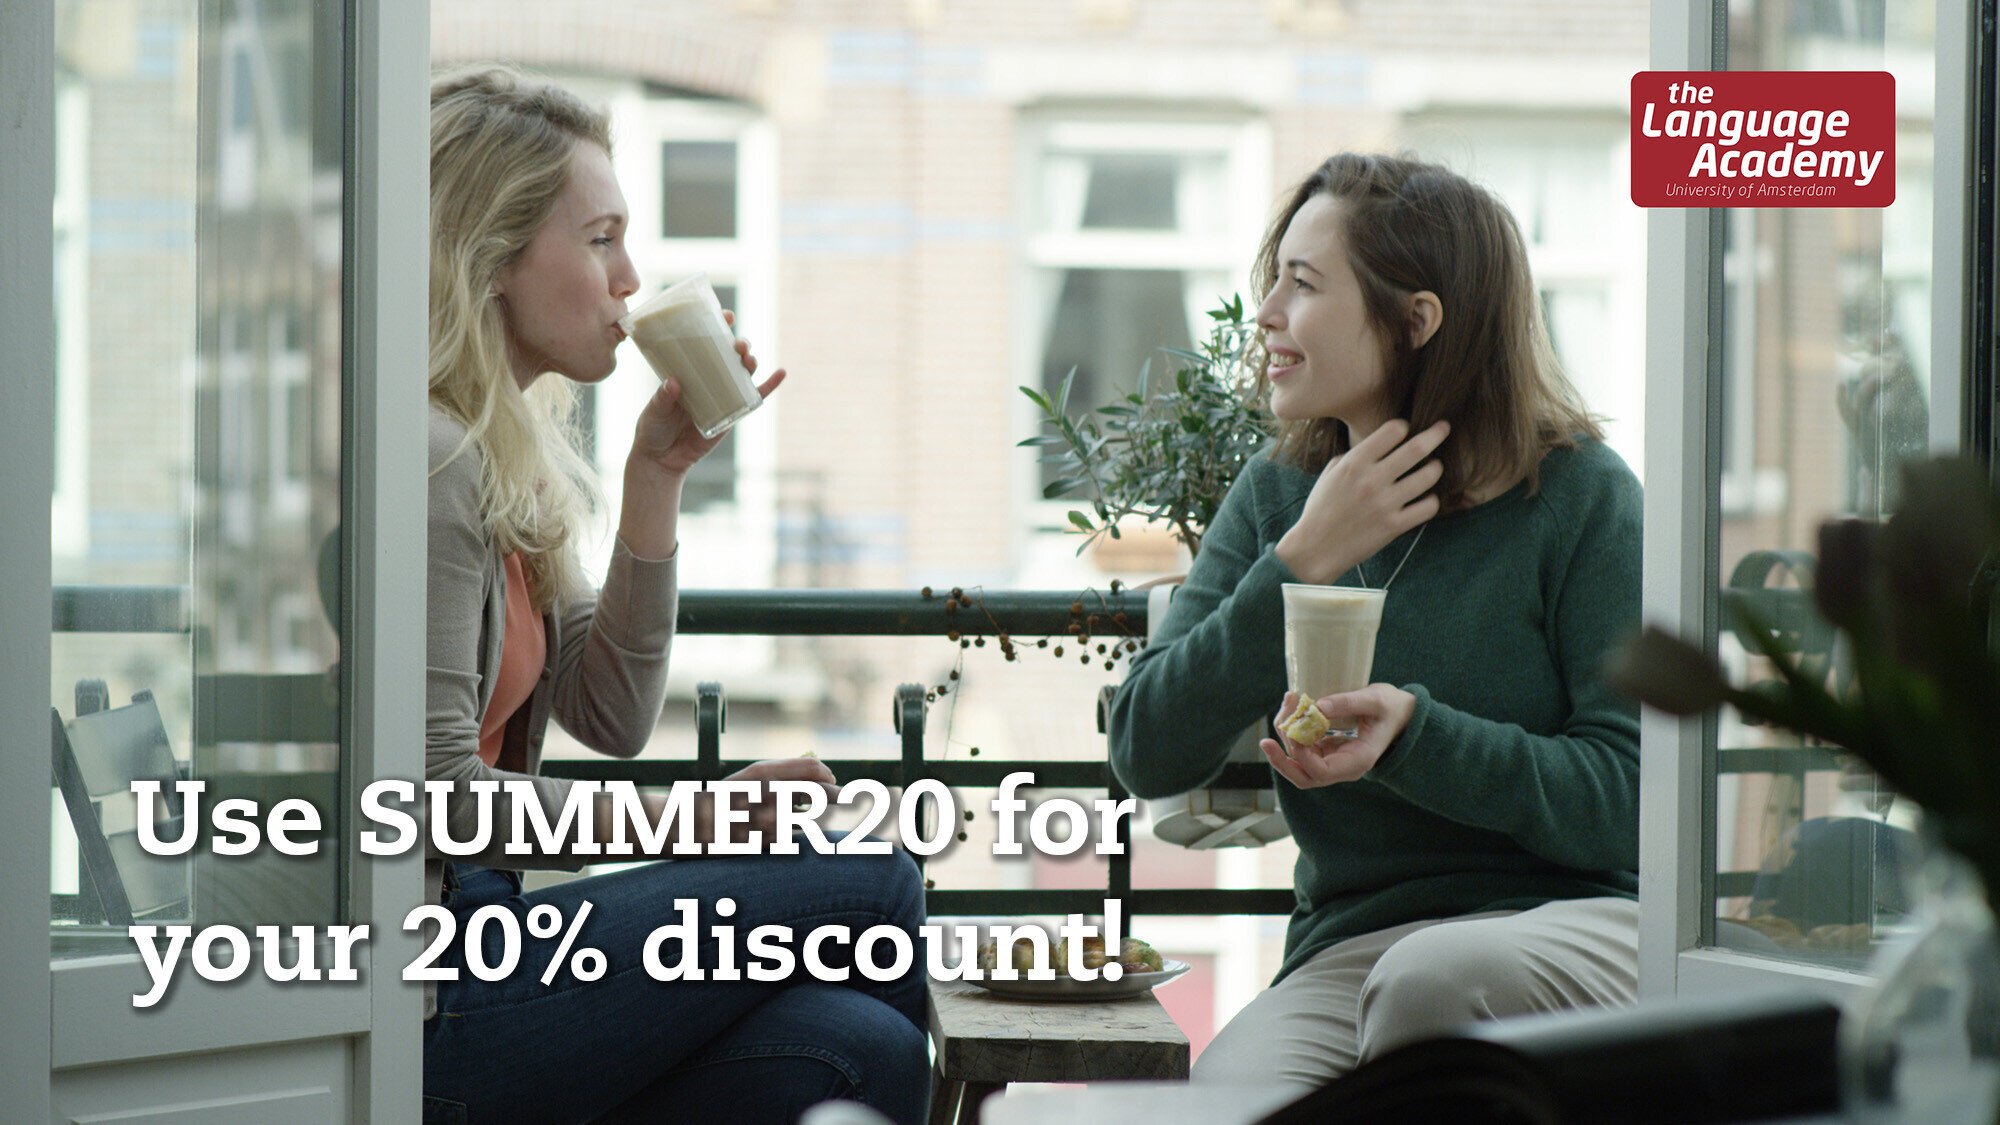 Use SUMMER20 for your 20% discount!